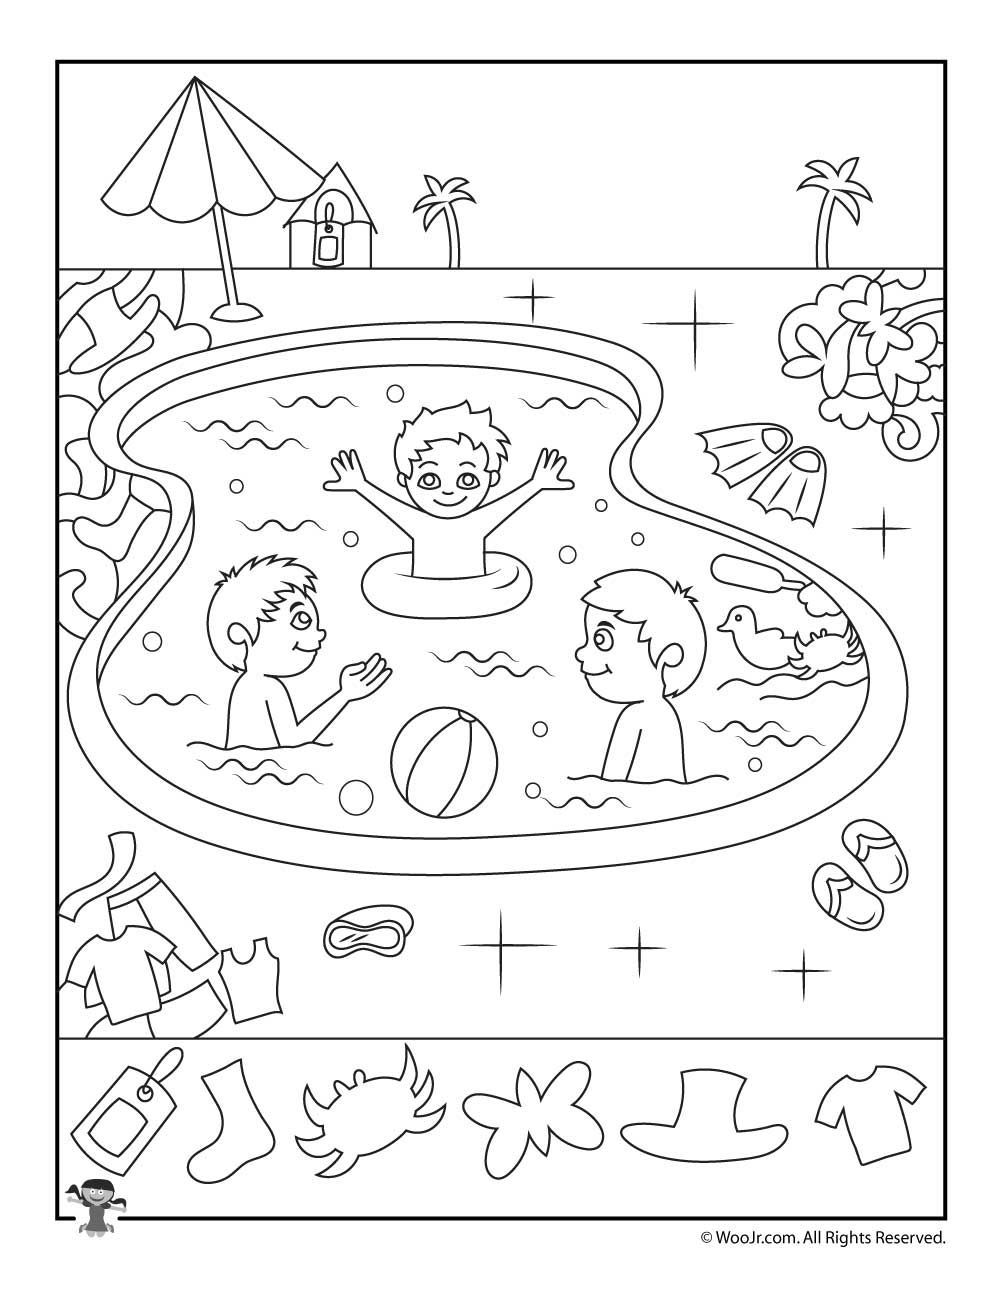 Swimming Pool Summer Hidden Pictures Page Hidden Pictures Hidden Pictures Printables Summer Worksheets [ 1294 x 1000 Pixel ]